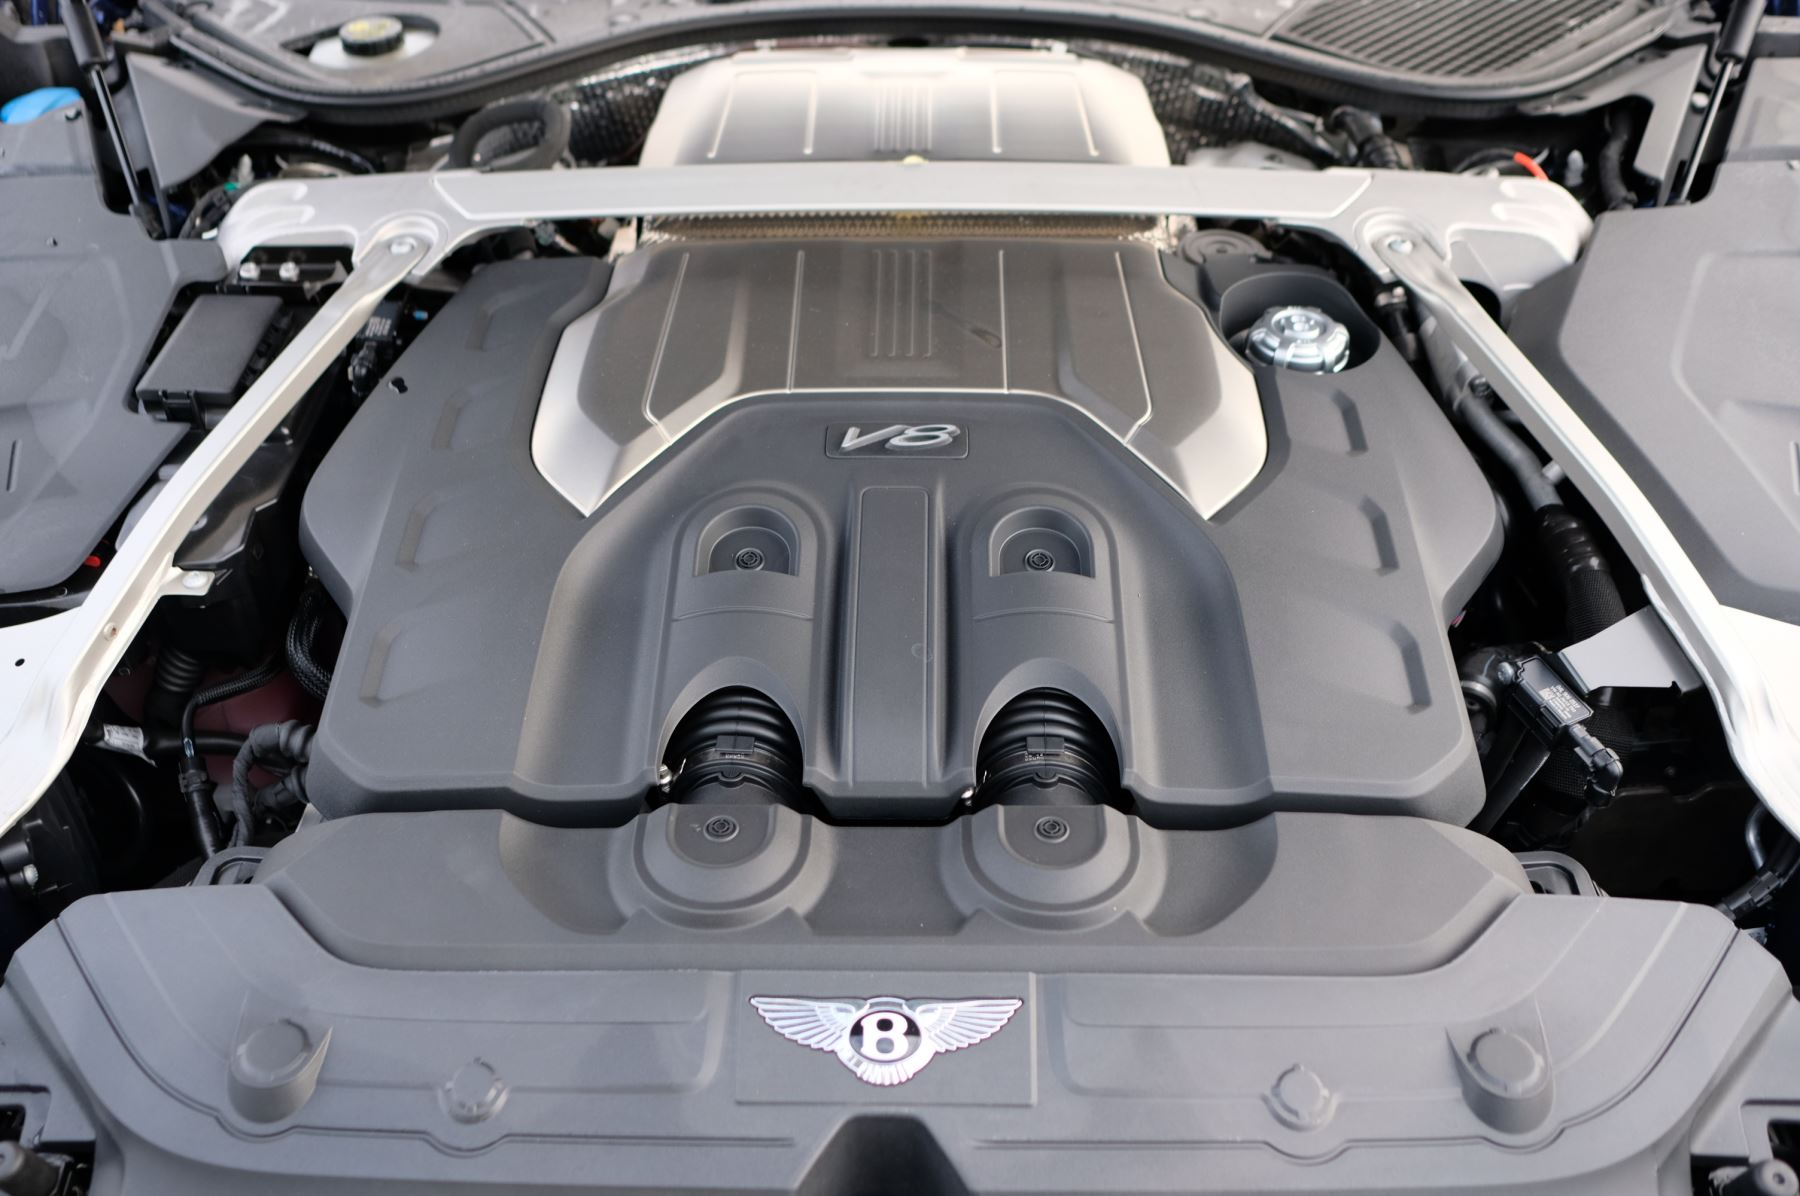 Bentley Continental GT 4.0 V8 Mulliner Driving Spec 2dr Auto - Centenary and Touring Specification image 9